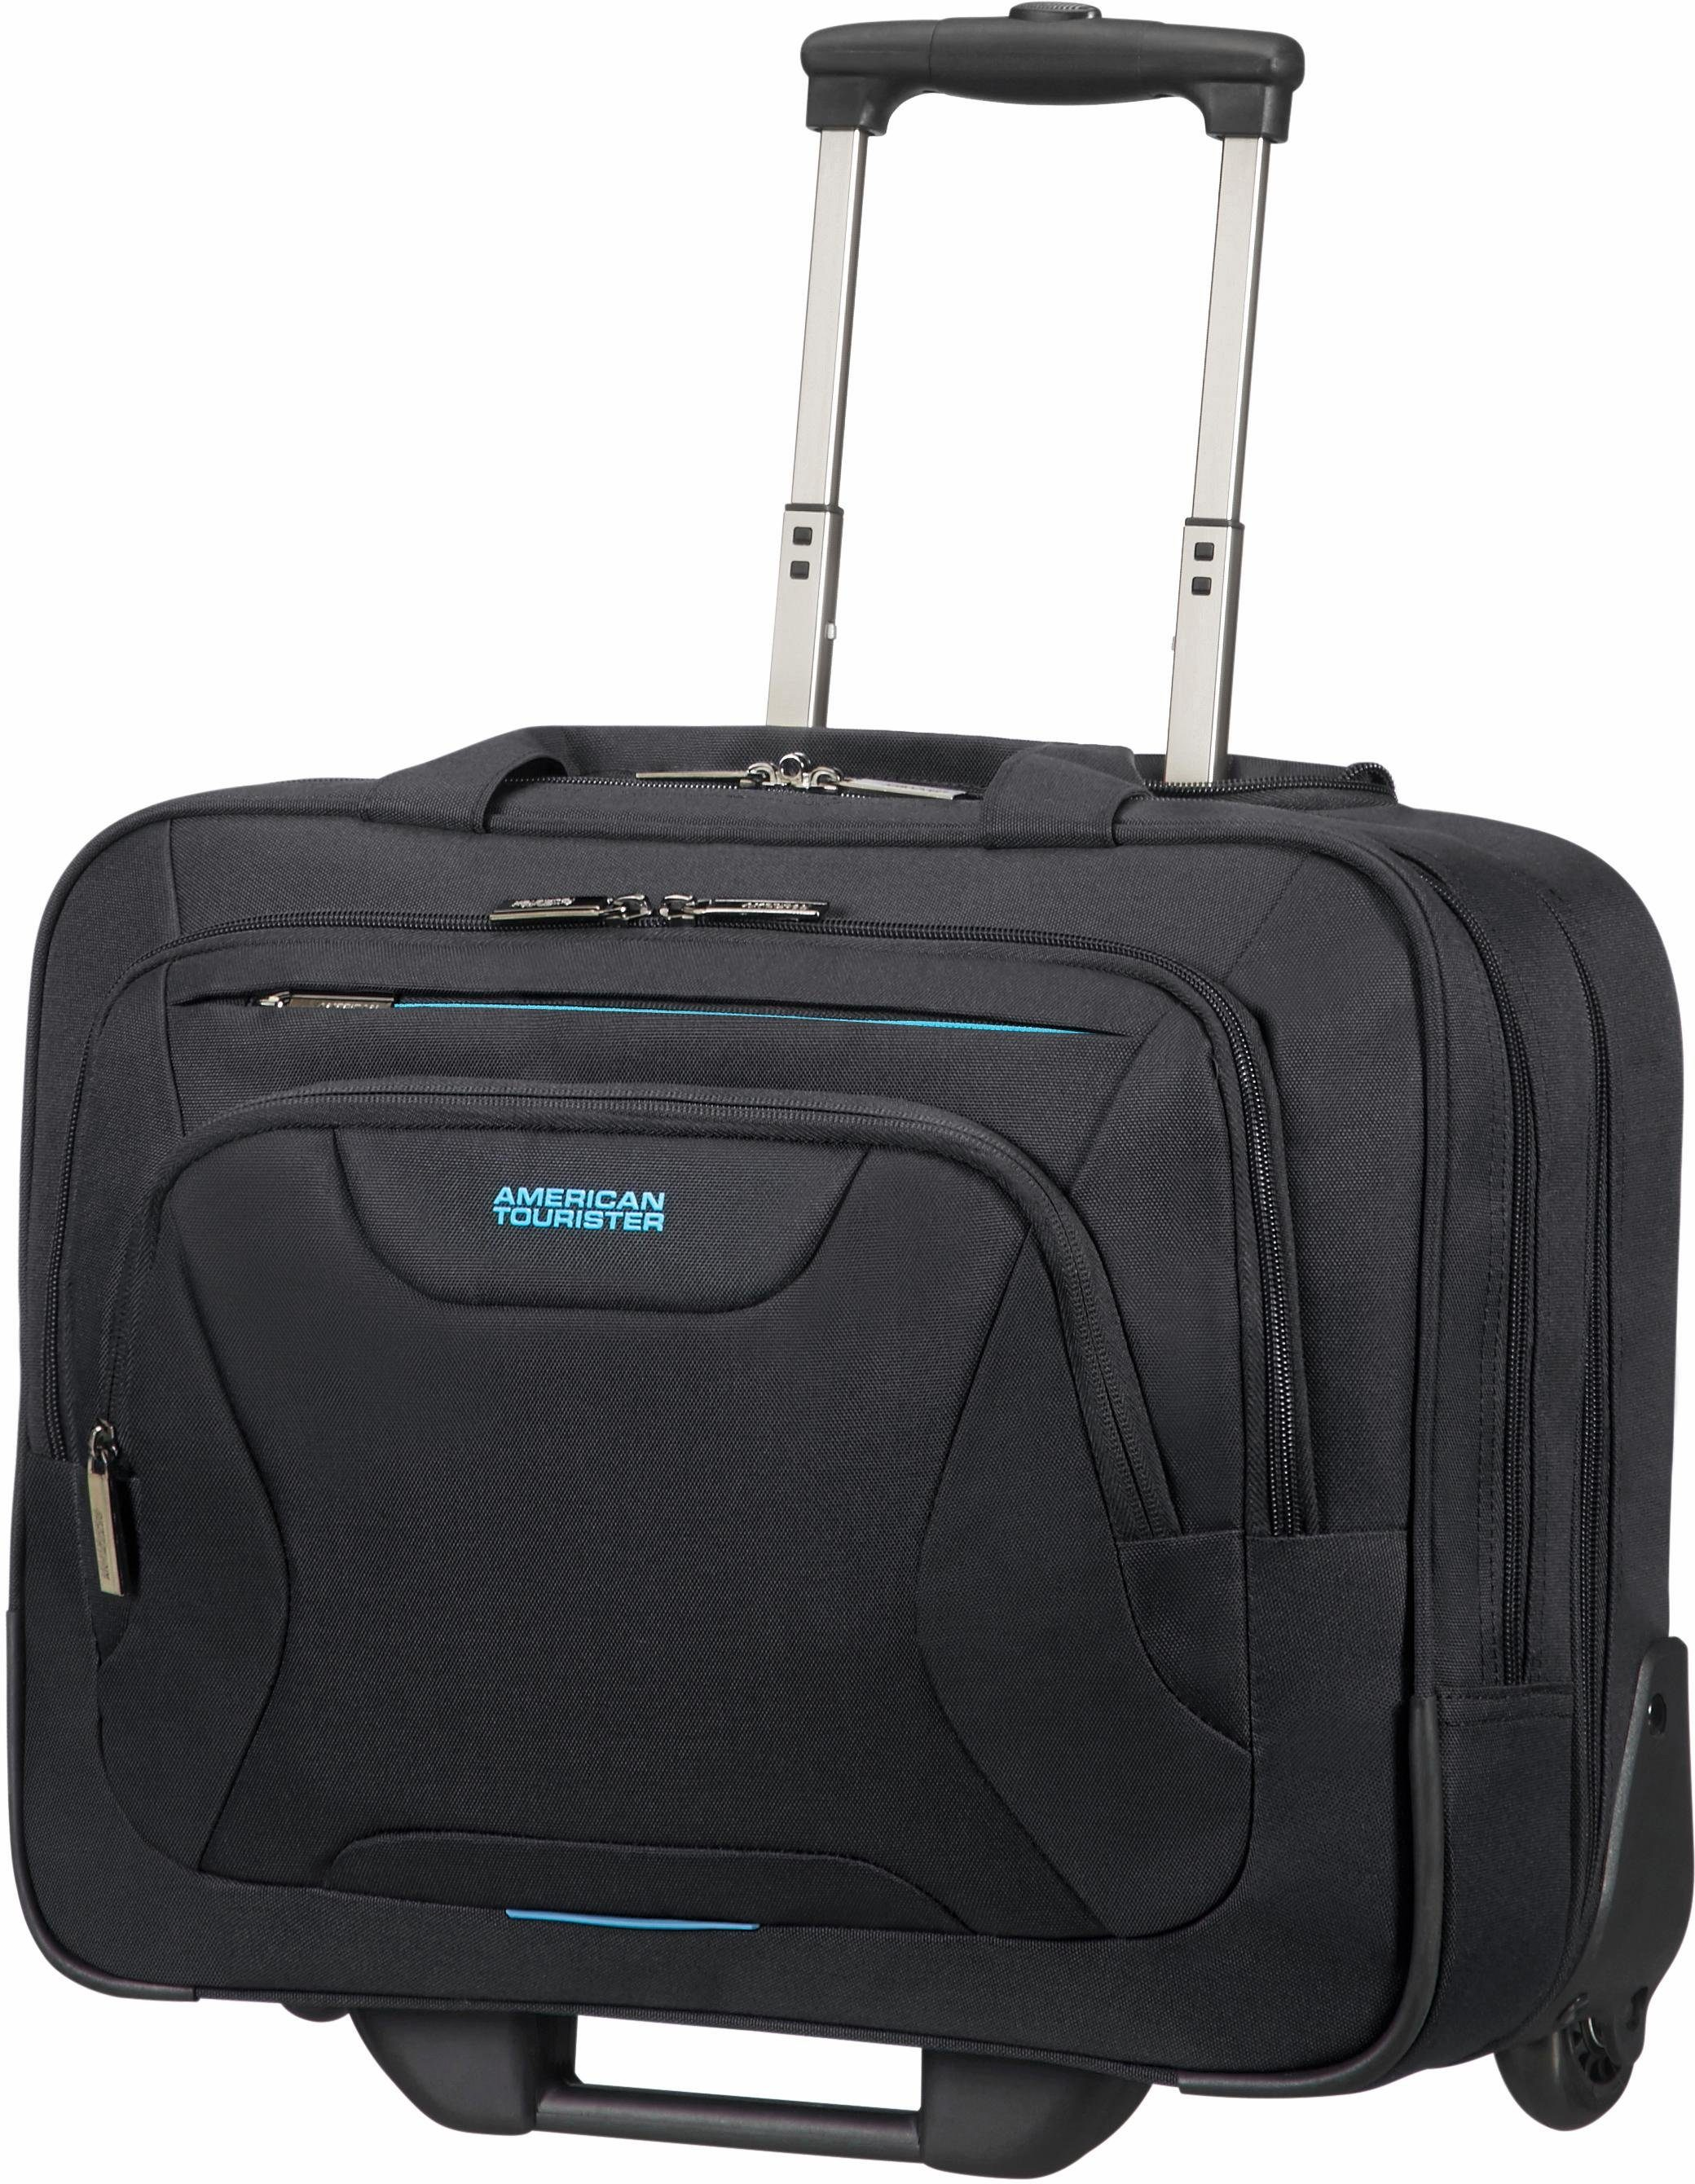 American Tourister Business Trolley mit 2 Rollen und Laptopfach, »At Work Rolling Tote«